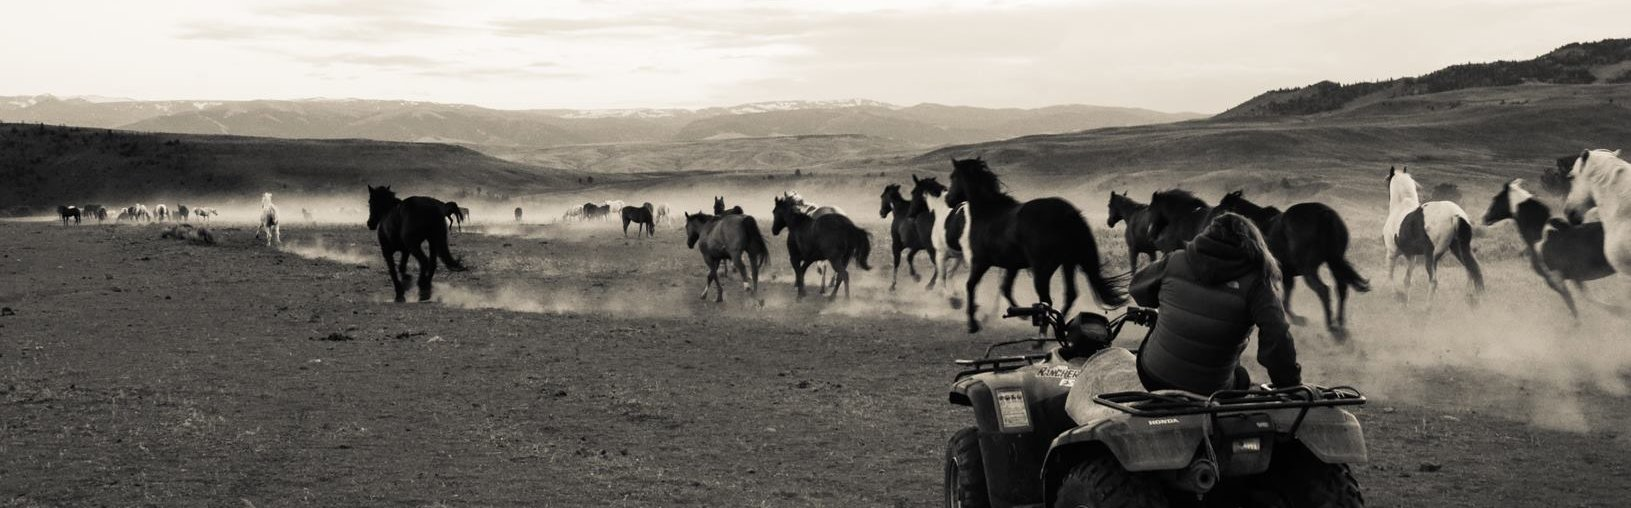 Live and work in the fun environment of a dude ranch in Wyoming ...